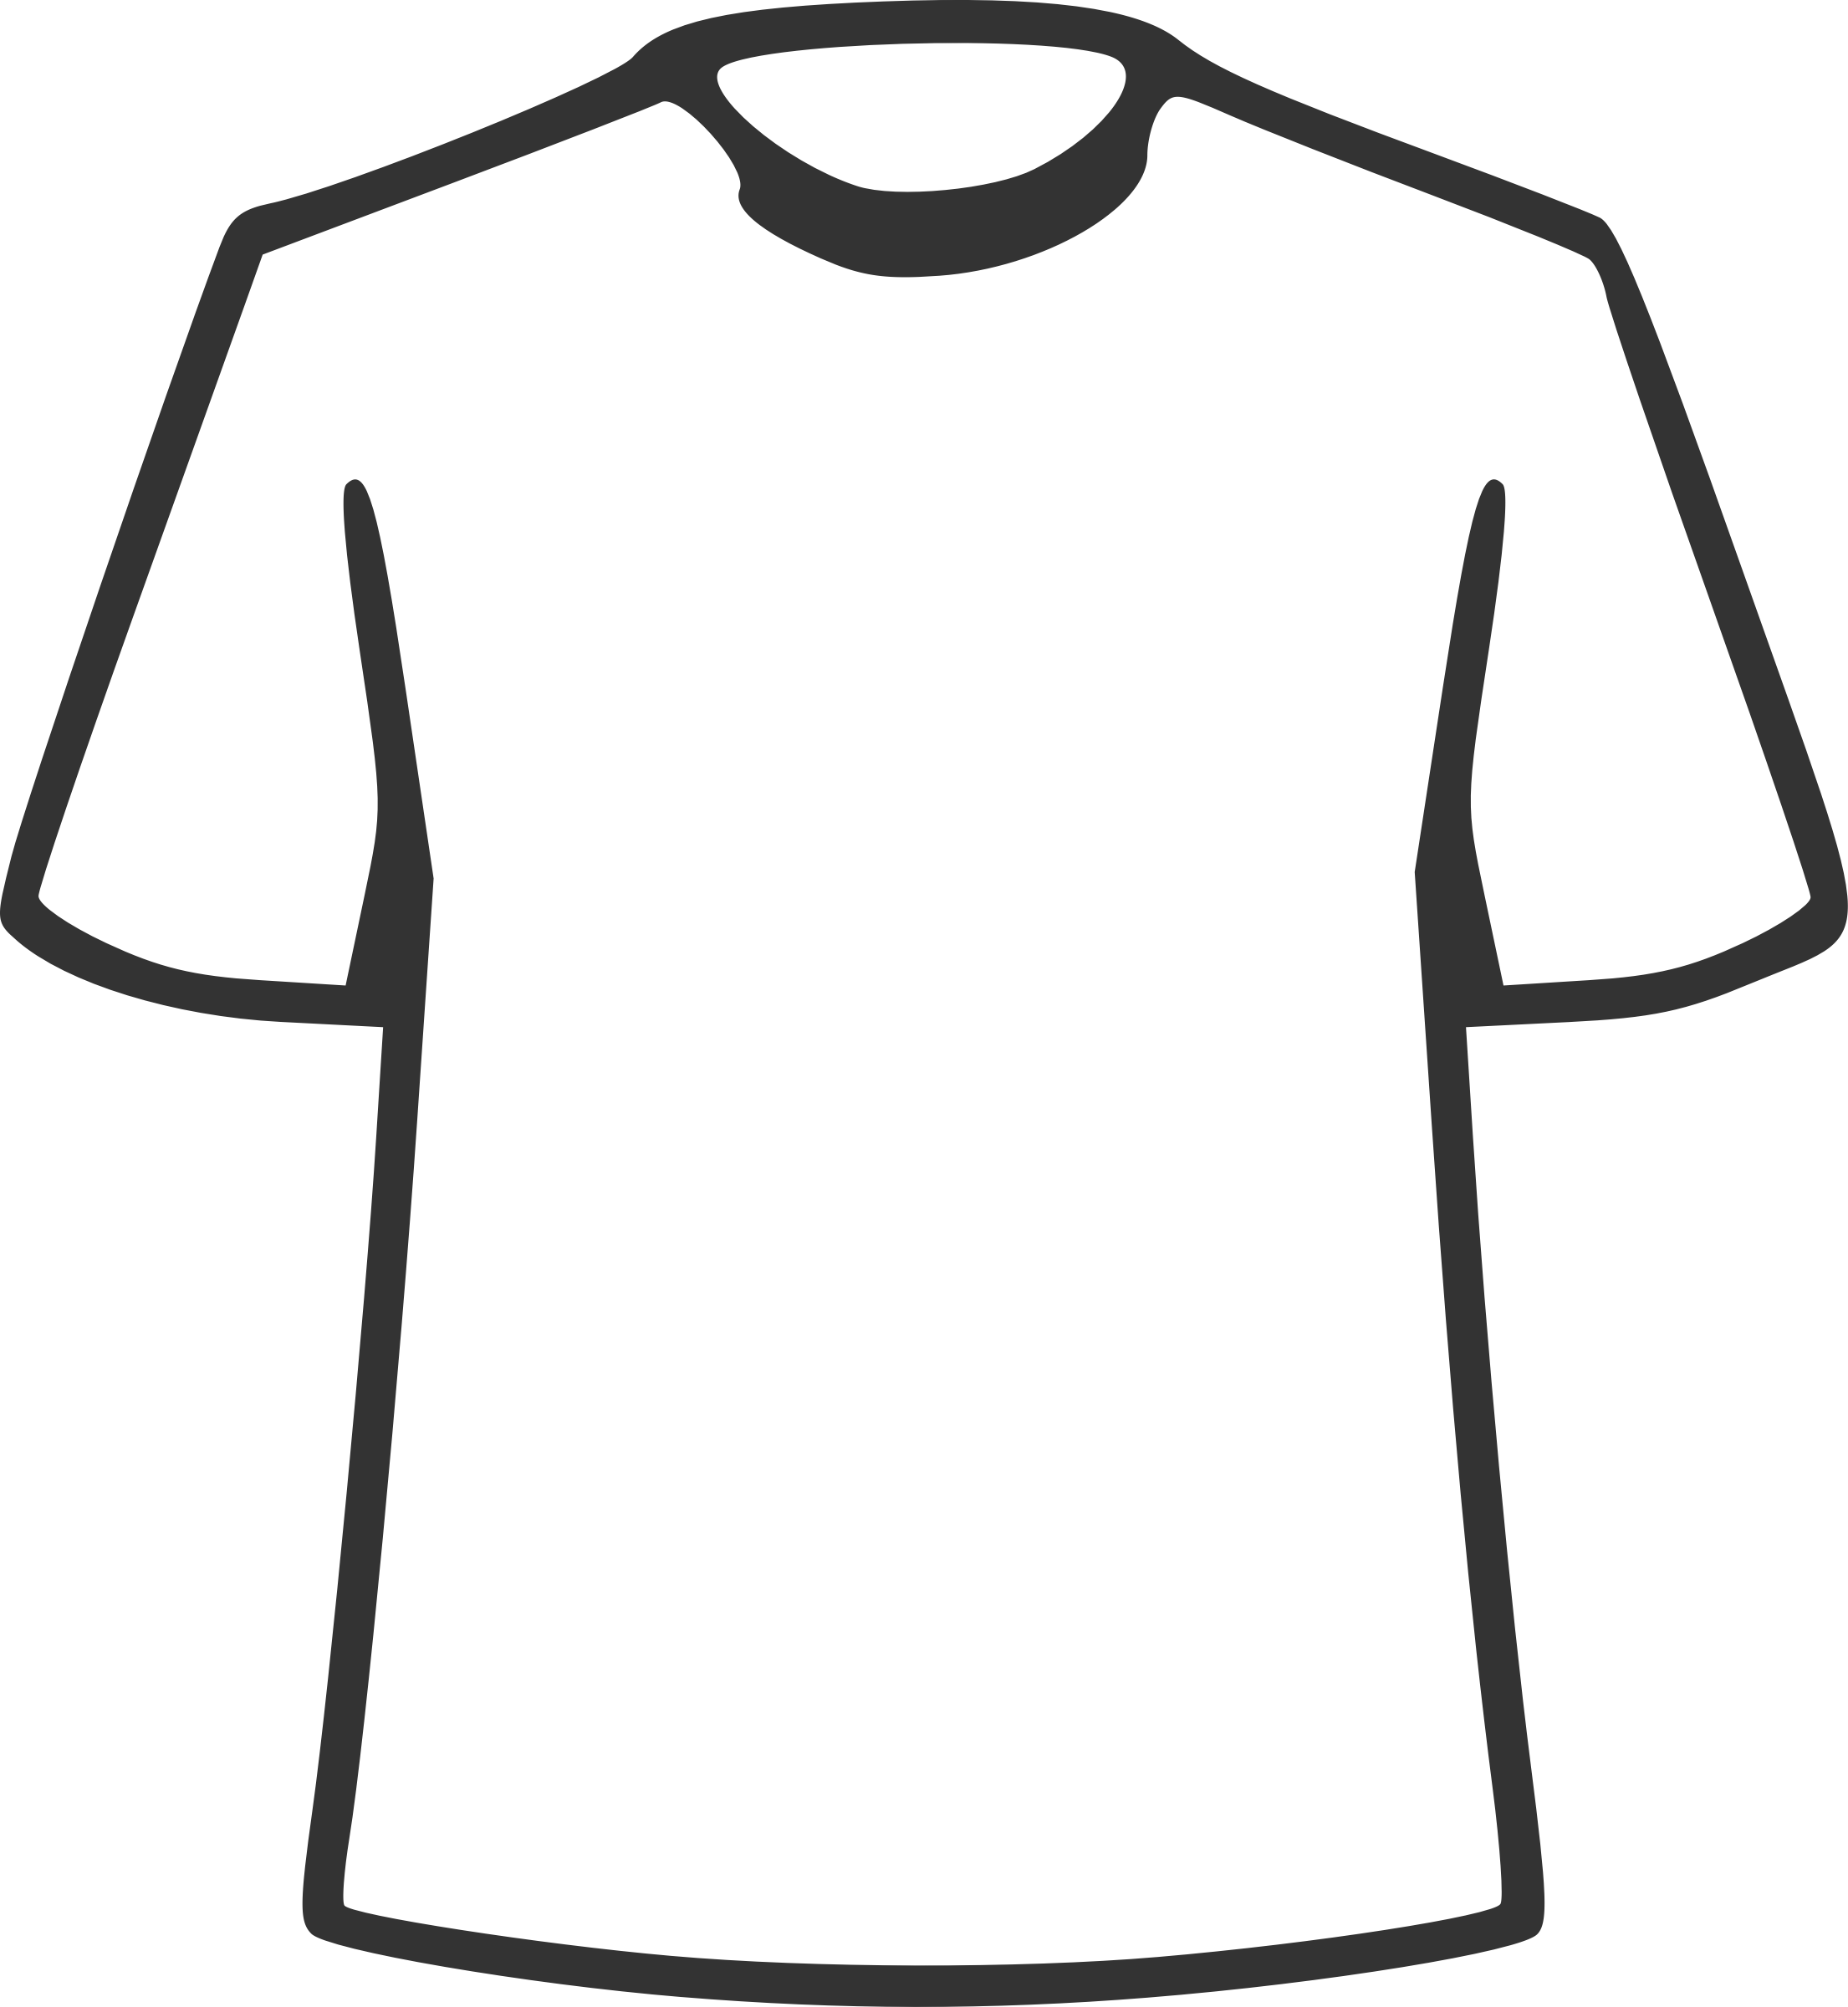 clip art black and white download Tshirt clipart. Simple shirt big image.